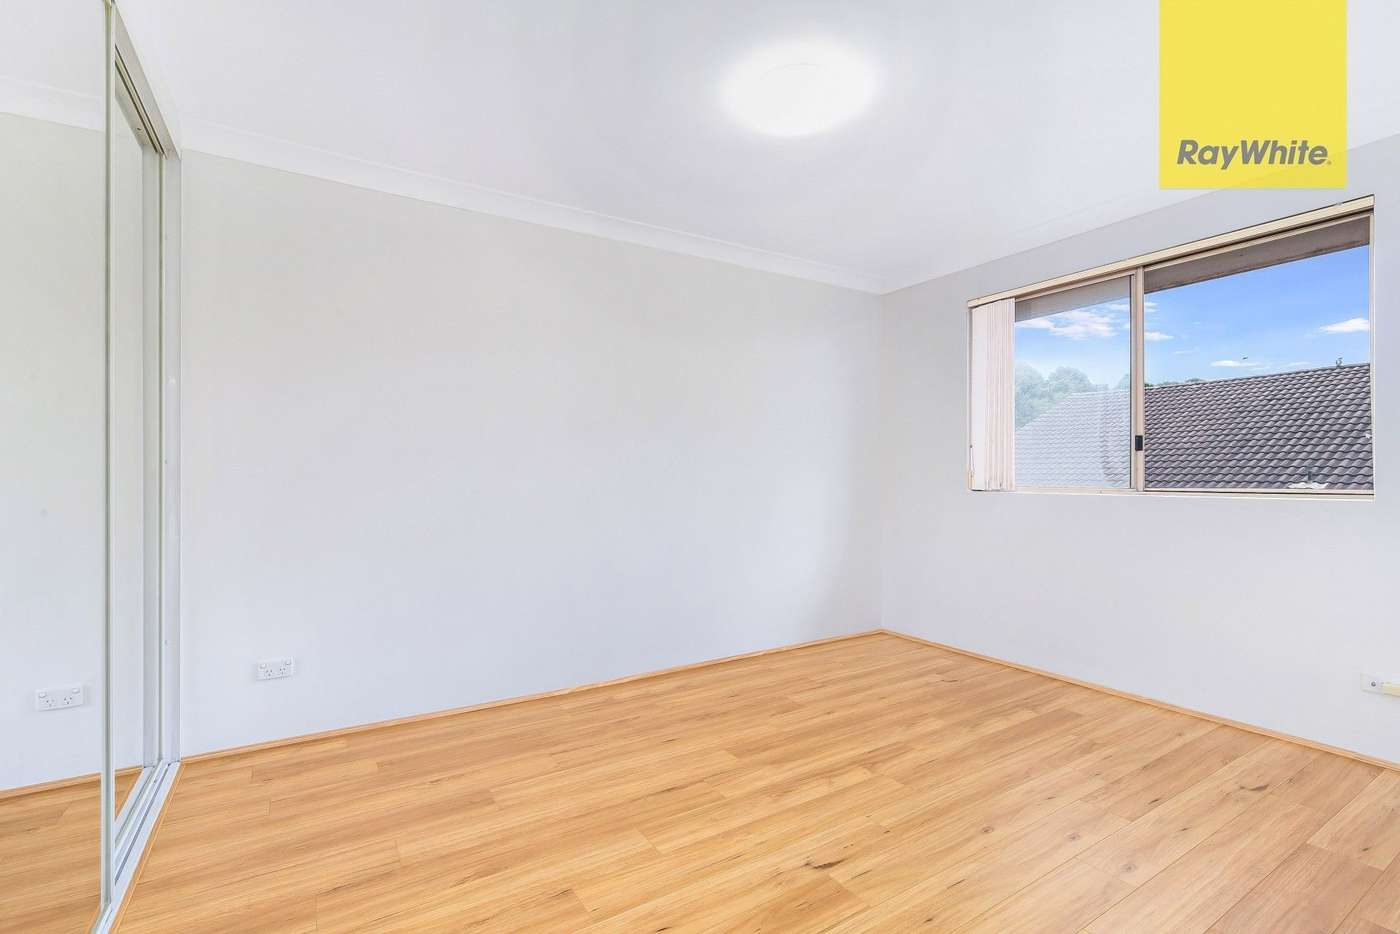 Sixth view of Homely unit listing, 7/14-16 High Street, Granville NSW 2142